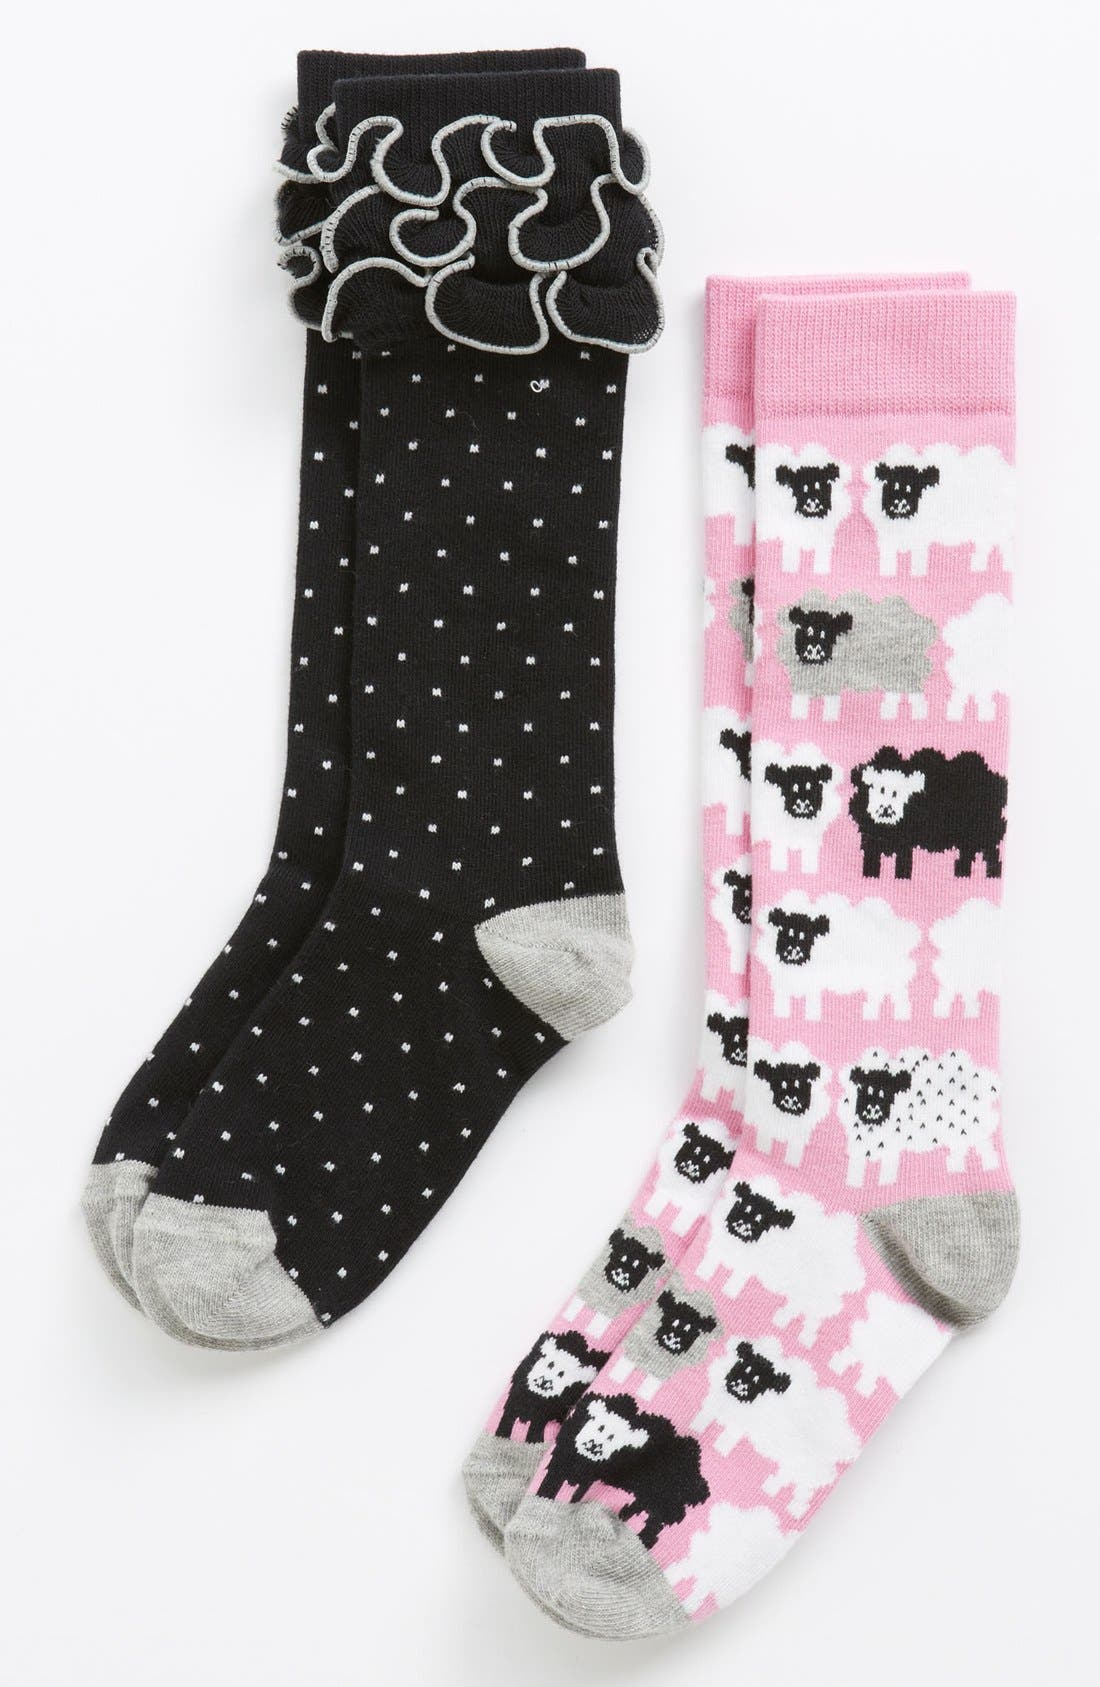 Main Image - Nordstrom 'Little Bo Sheep' Knee High Socks (2-Pack) (Toddler, Little Girls & Big Girls)